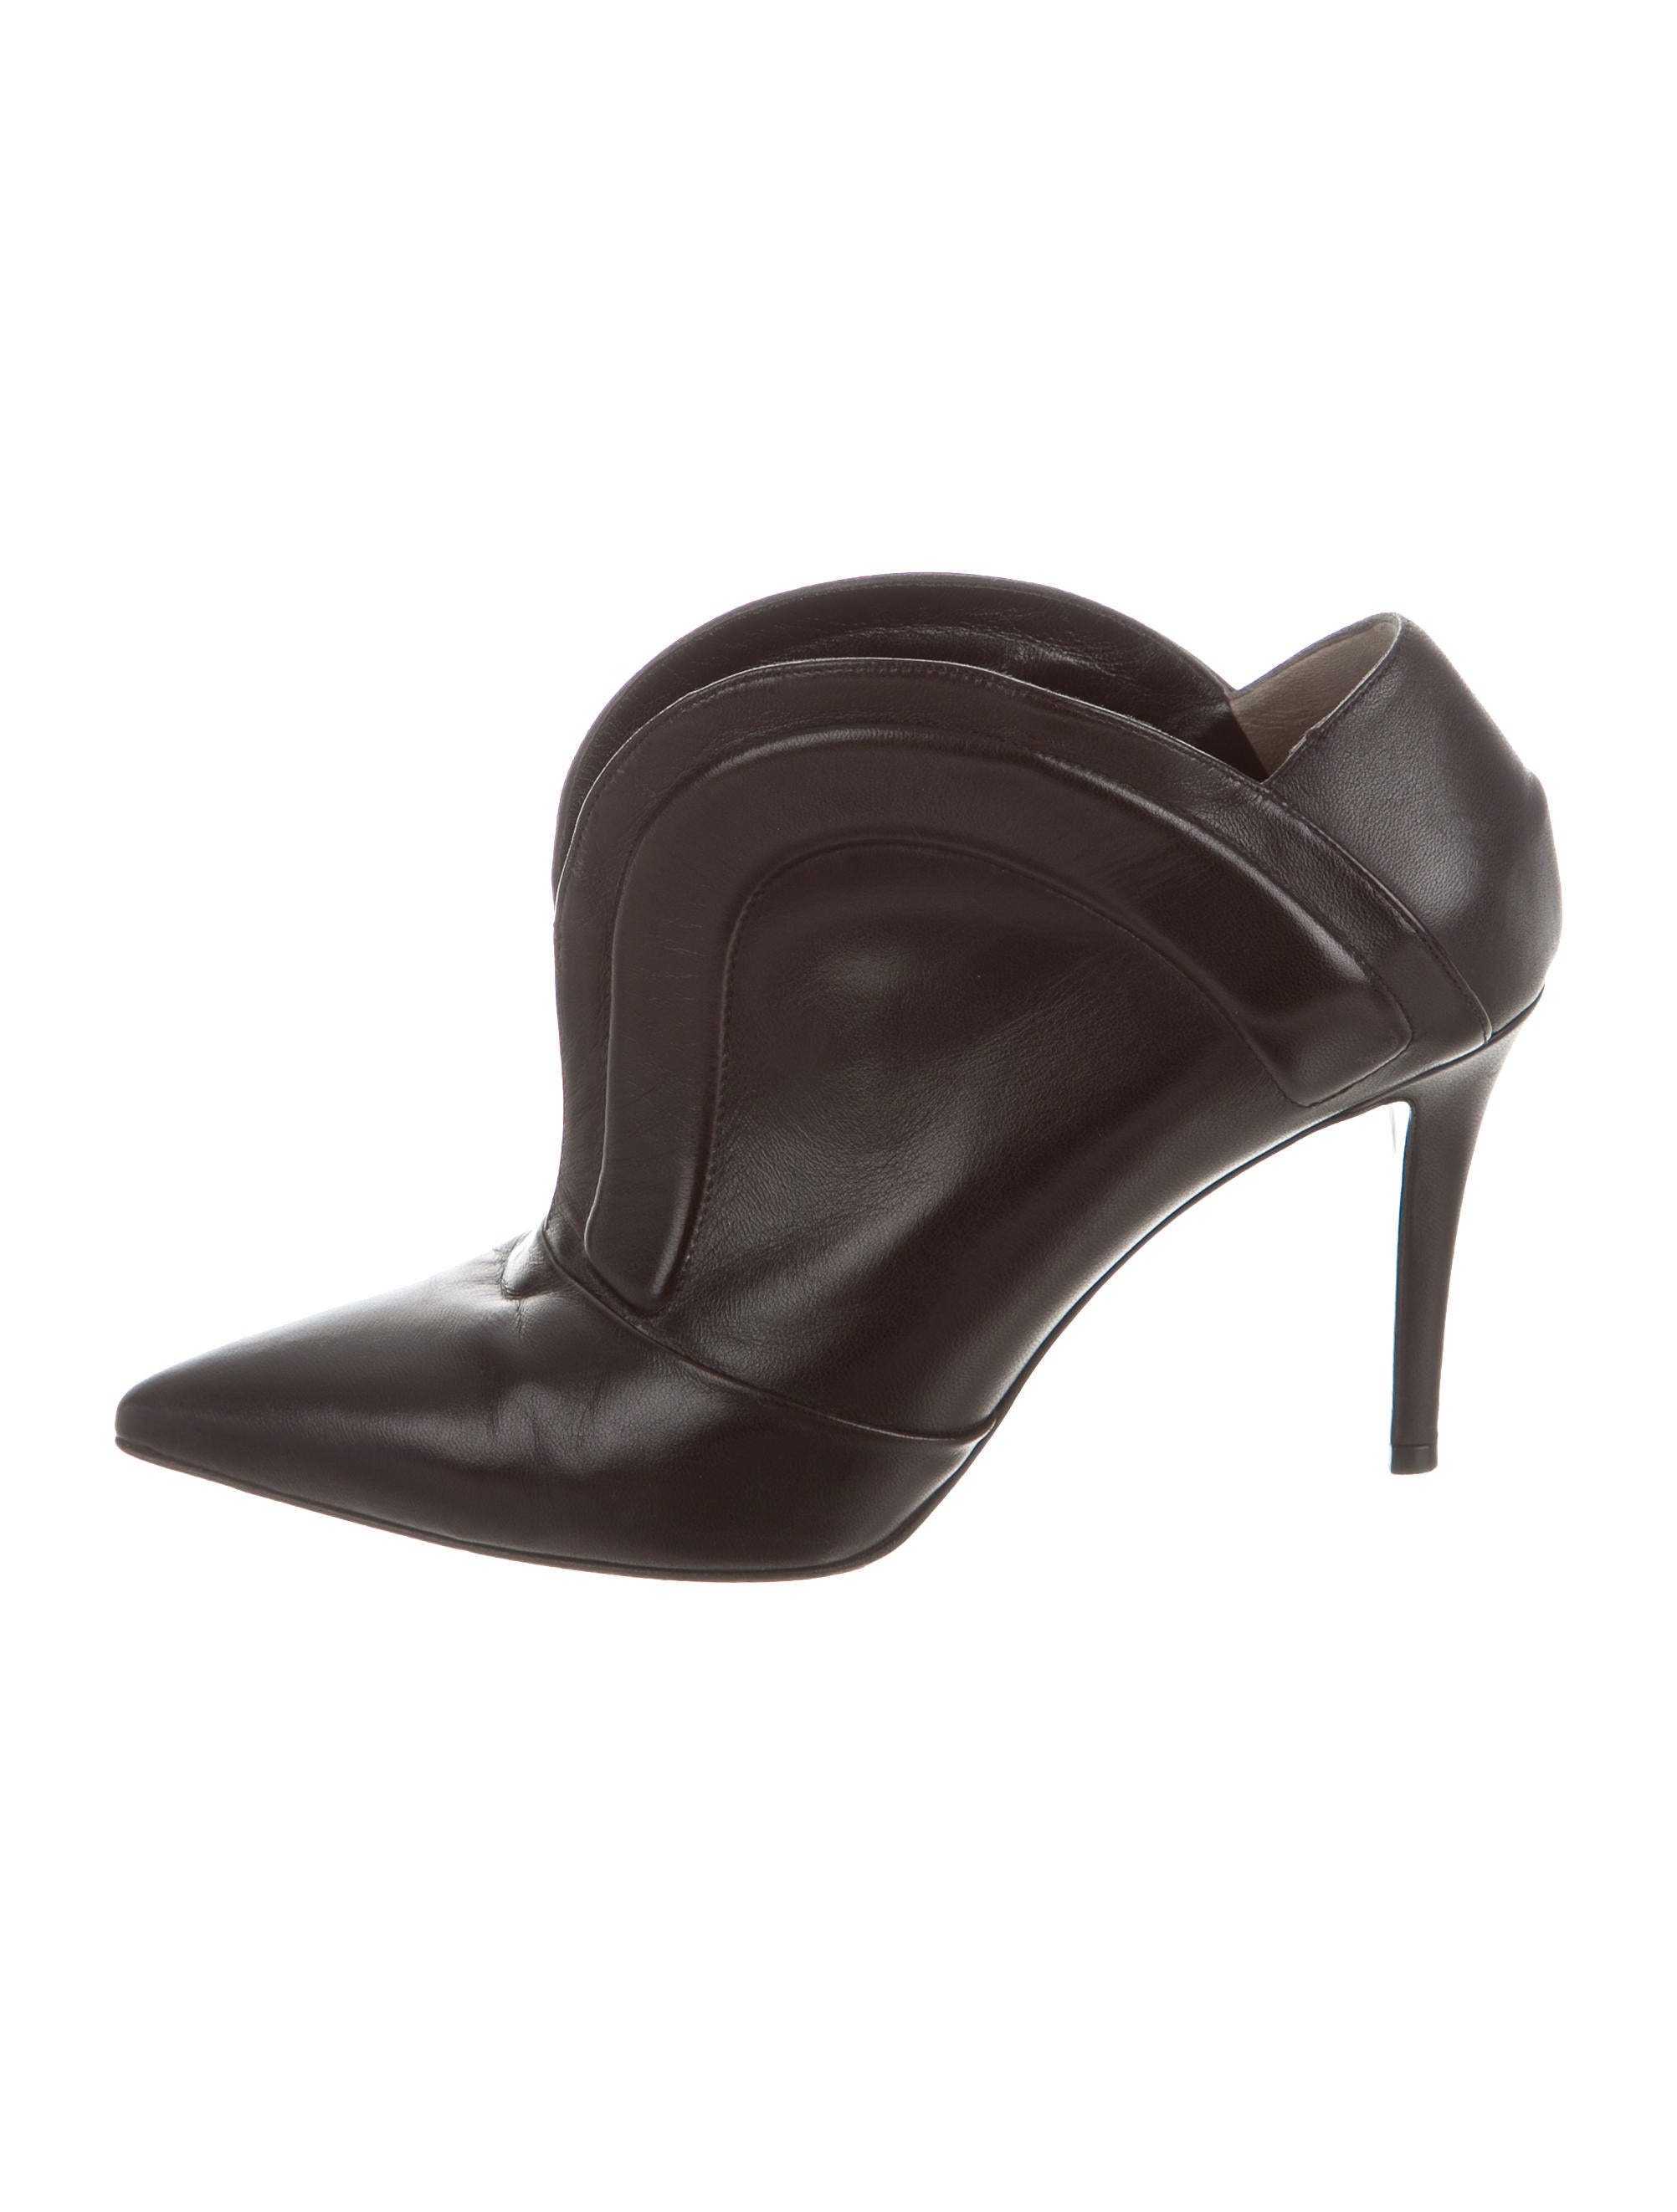 fendi leather pointed toe ankle boots shoes fen52311